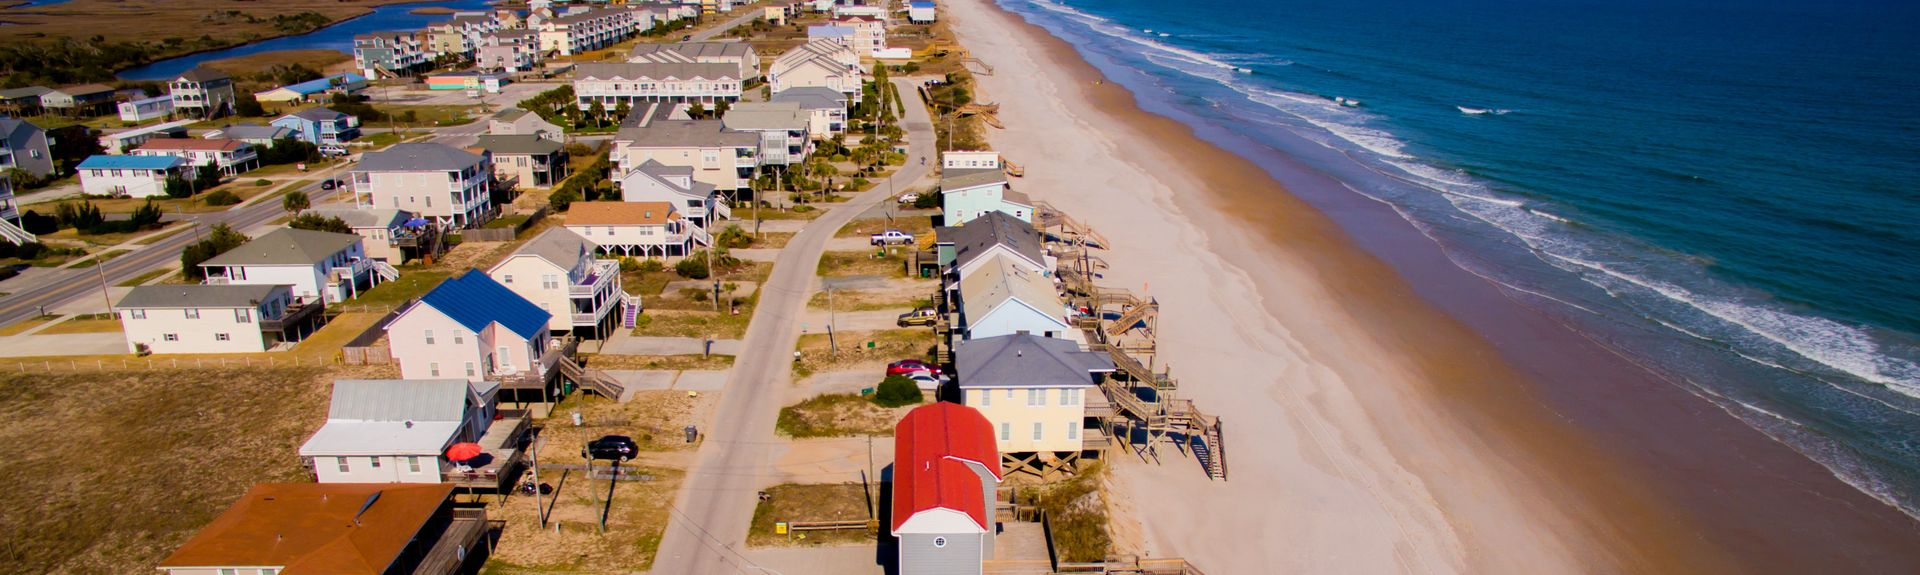 Topsail Island, Topsail-øen, North Carolina, USA